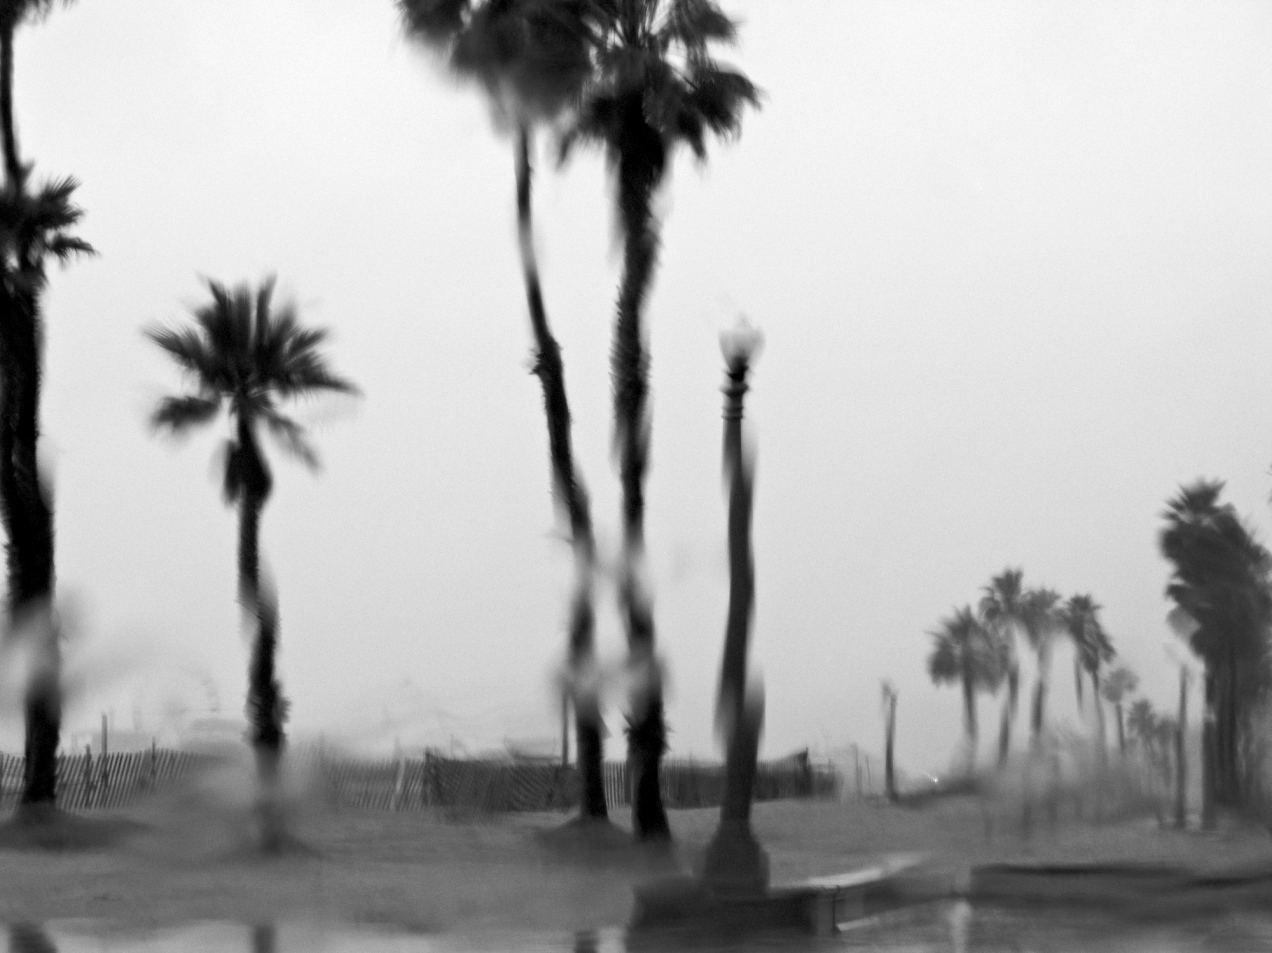 Summer rain in Los Angeles. Photo by Flickr user zimtwookie, used under a Creative Commons license.